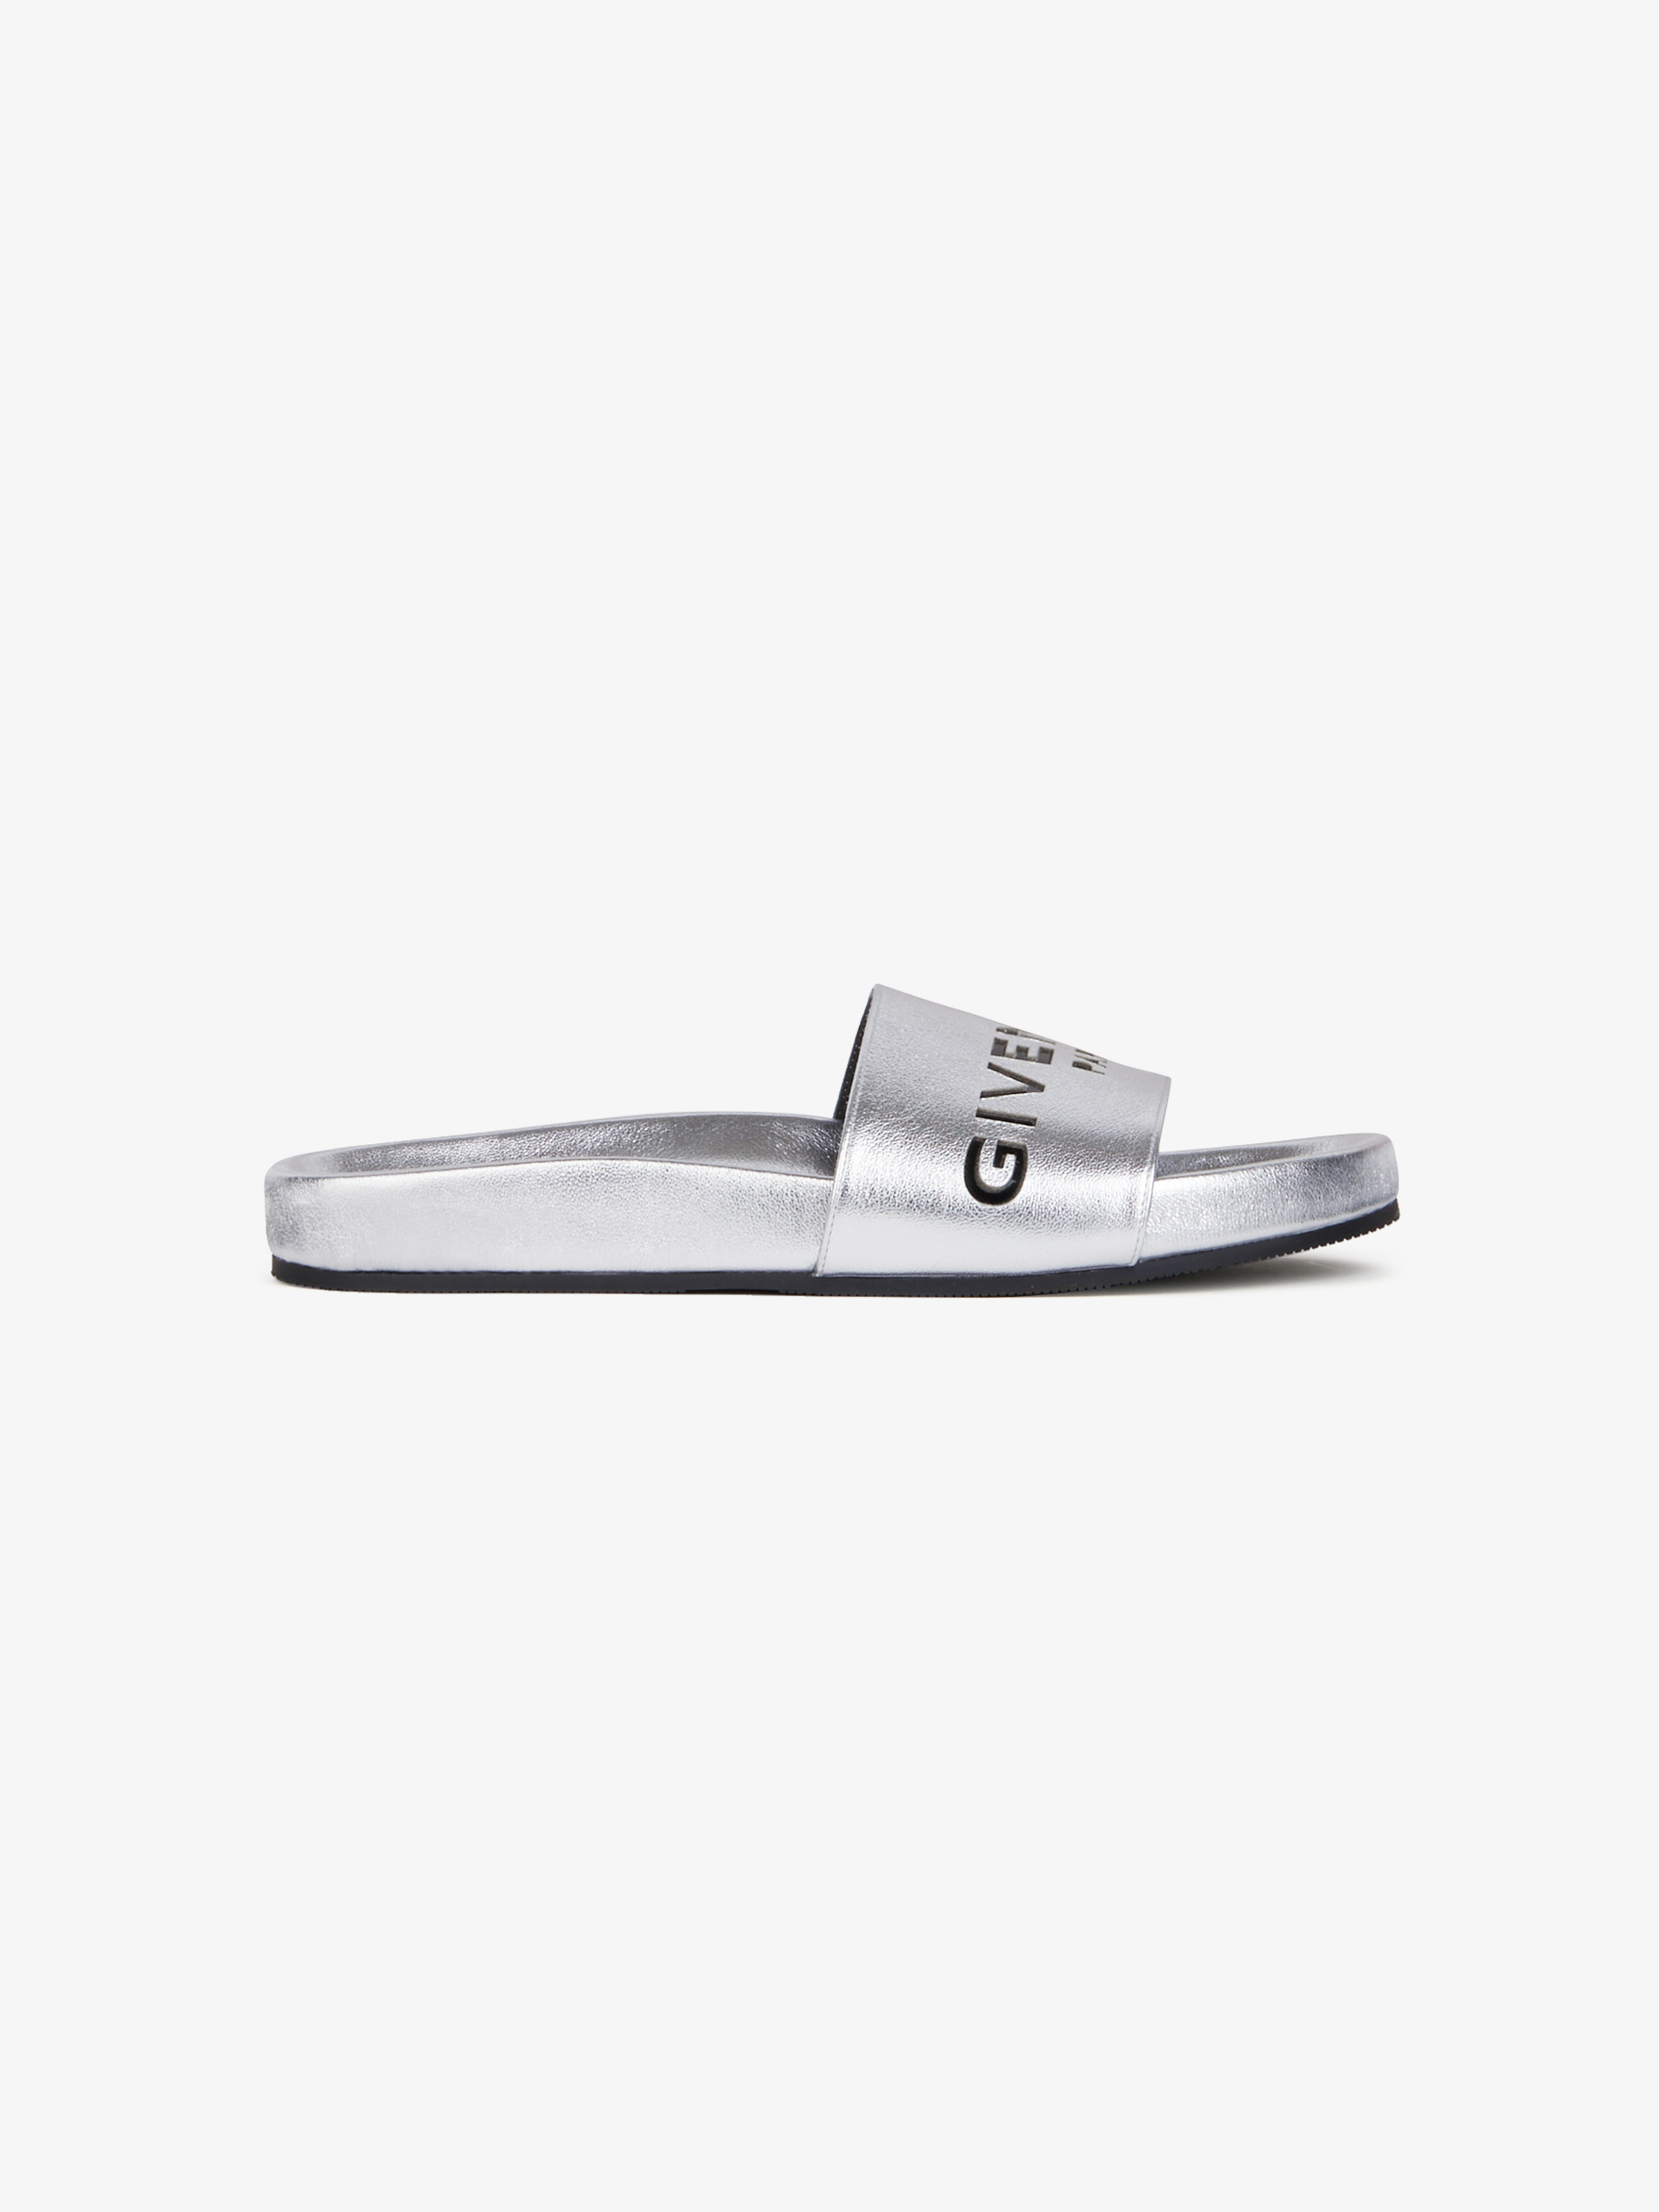 GIVENCHY PARIS sandals in metallized leather